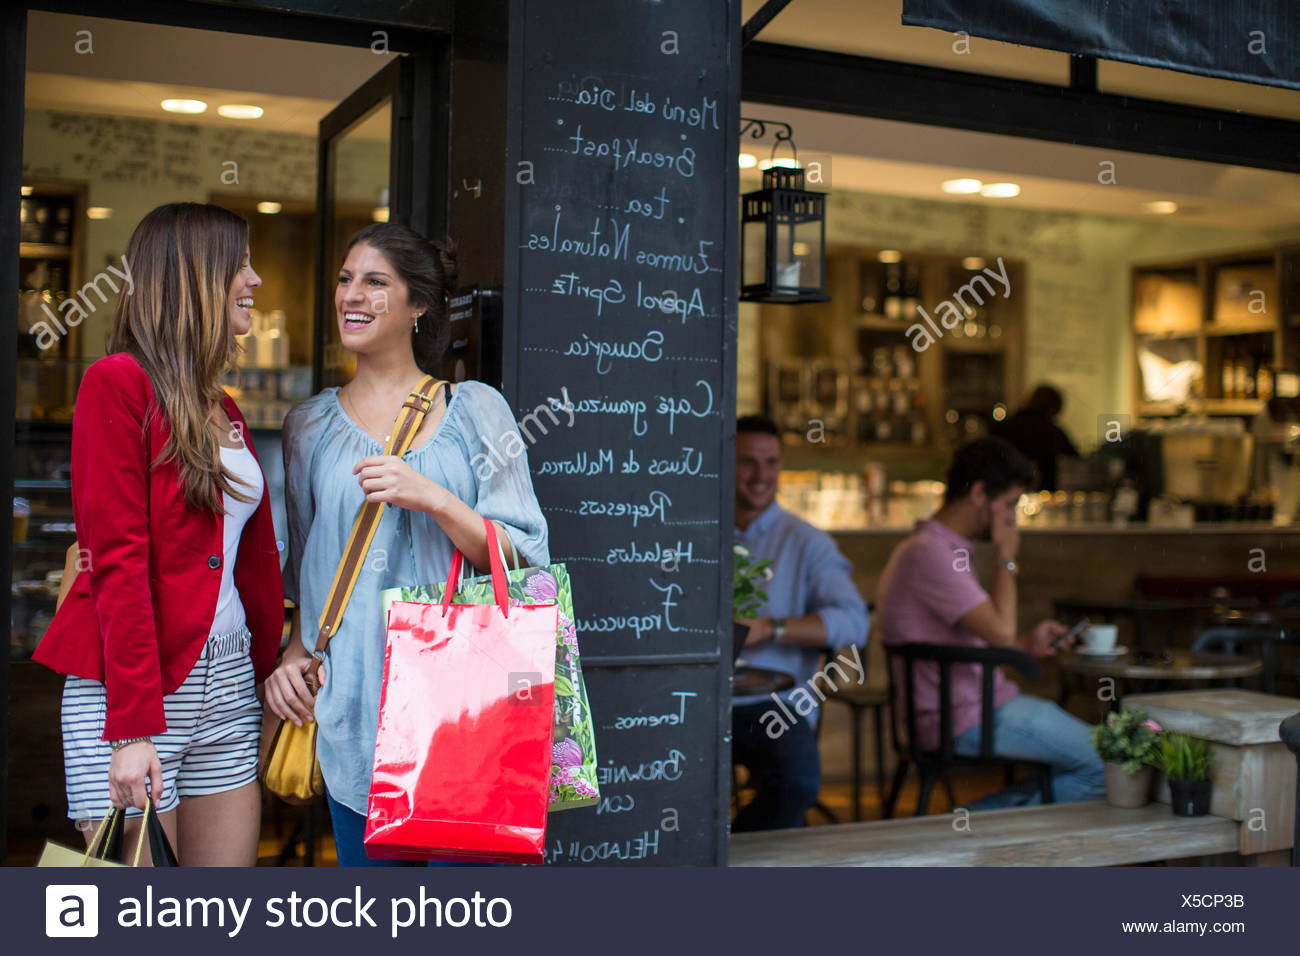 Two young female friends outside cafe carrying shopping bags - Stock Image